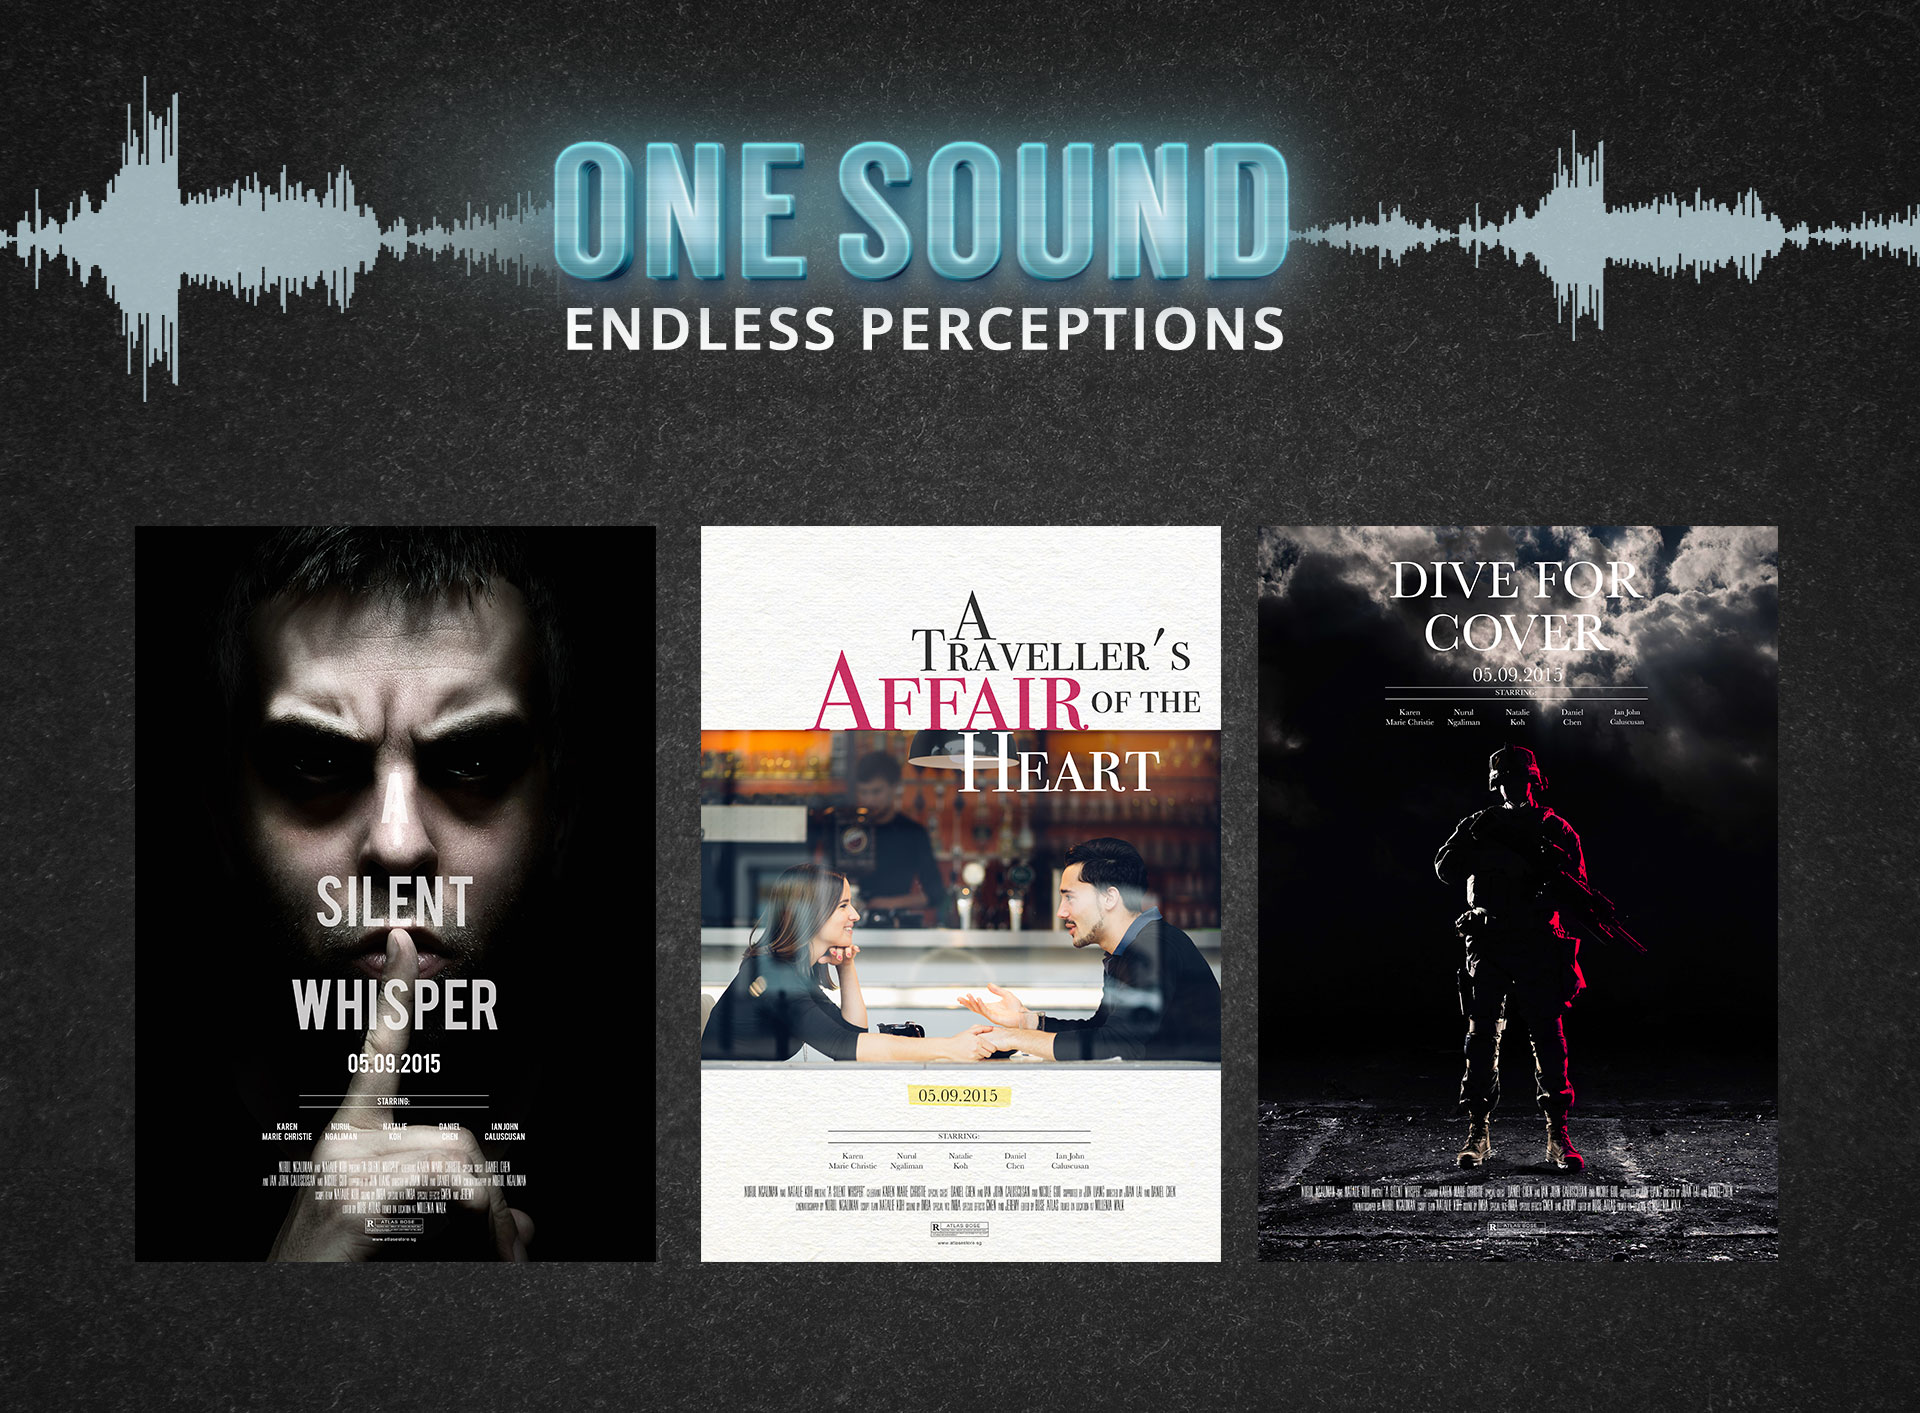 One Sound Endless Perception_3 Sound Movies